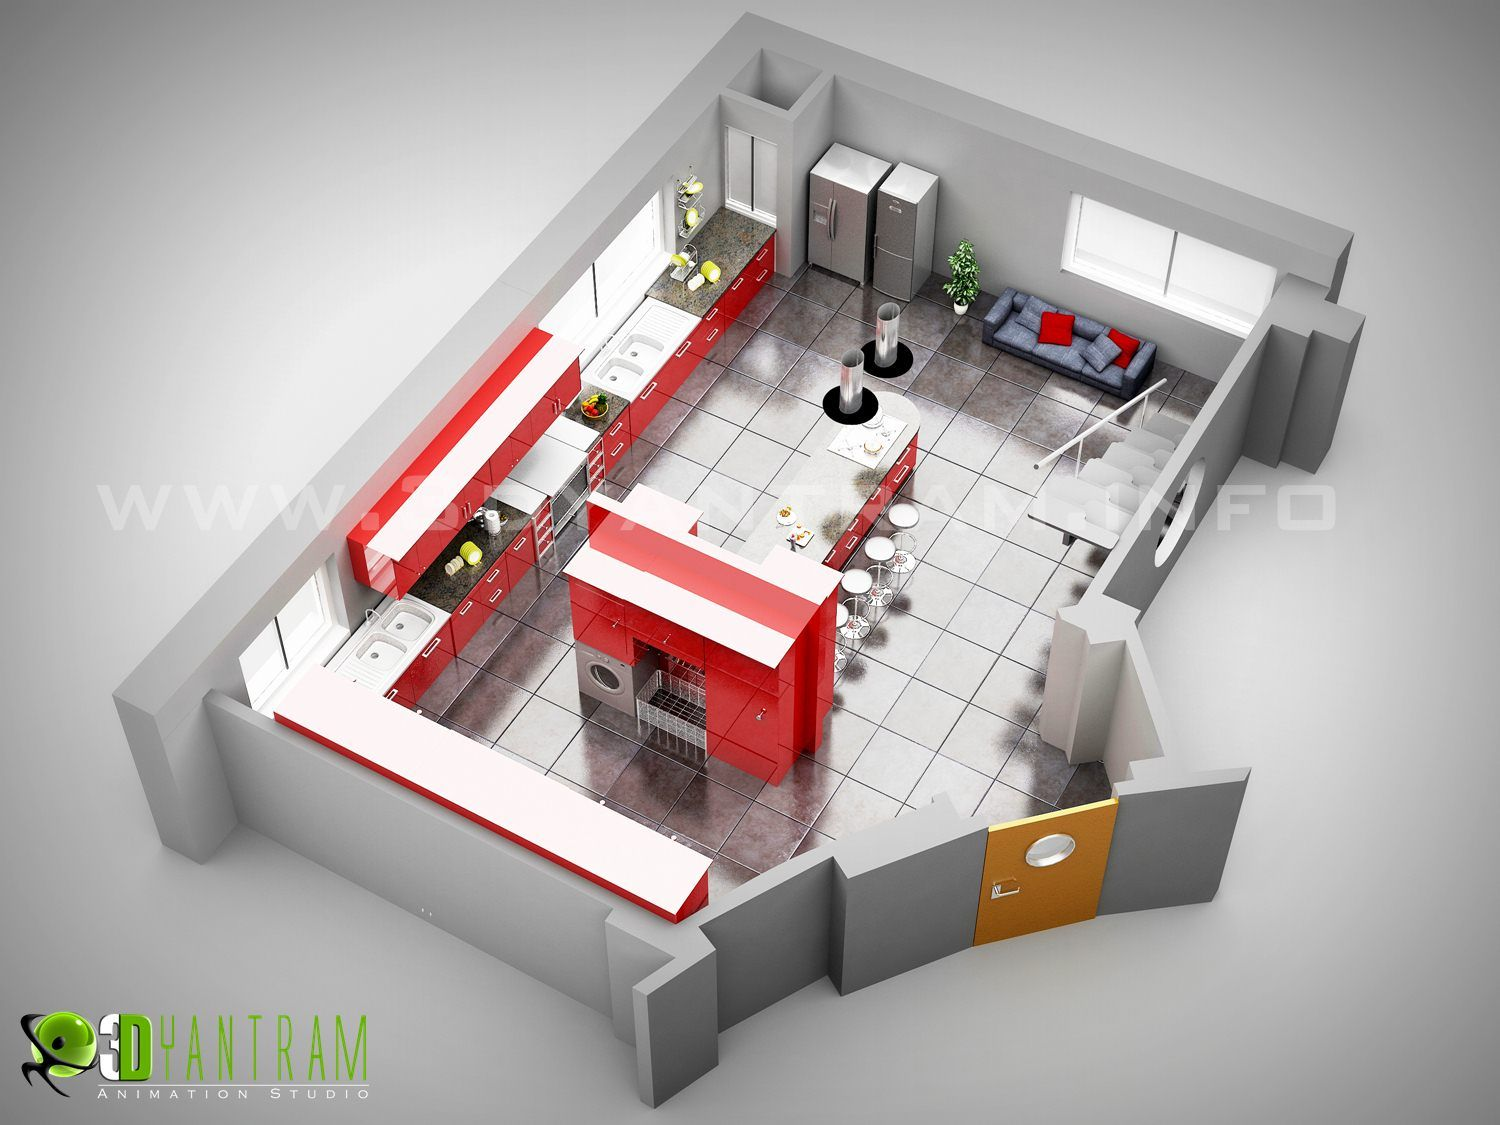 Studio Plans And Designs studio kitchen 3d floor plan design sydeny , australia | plantas